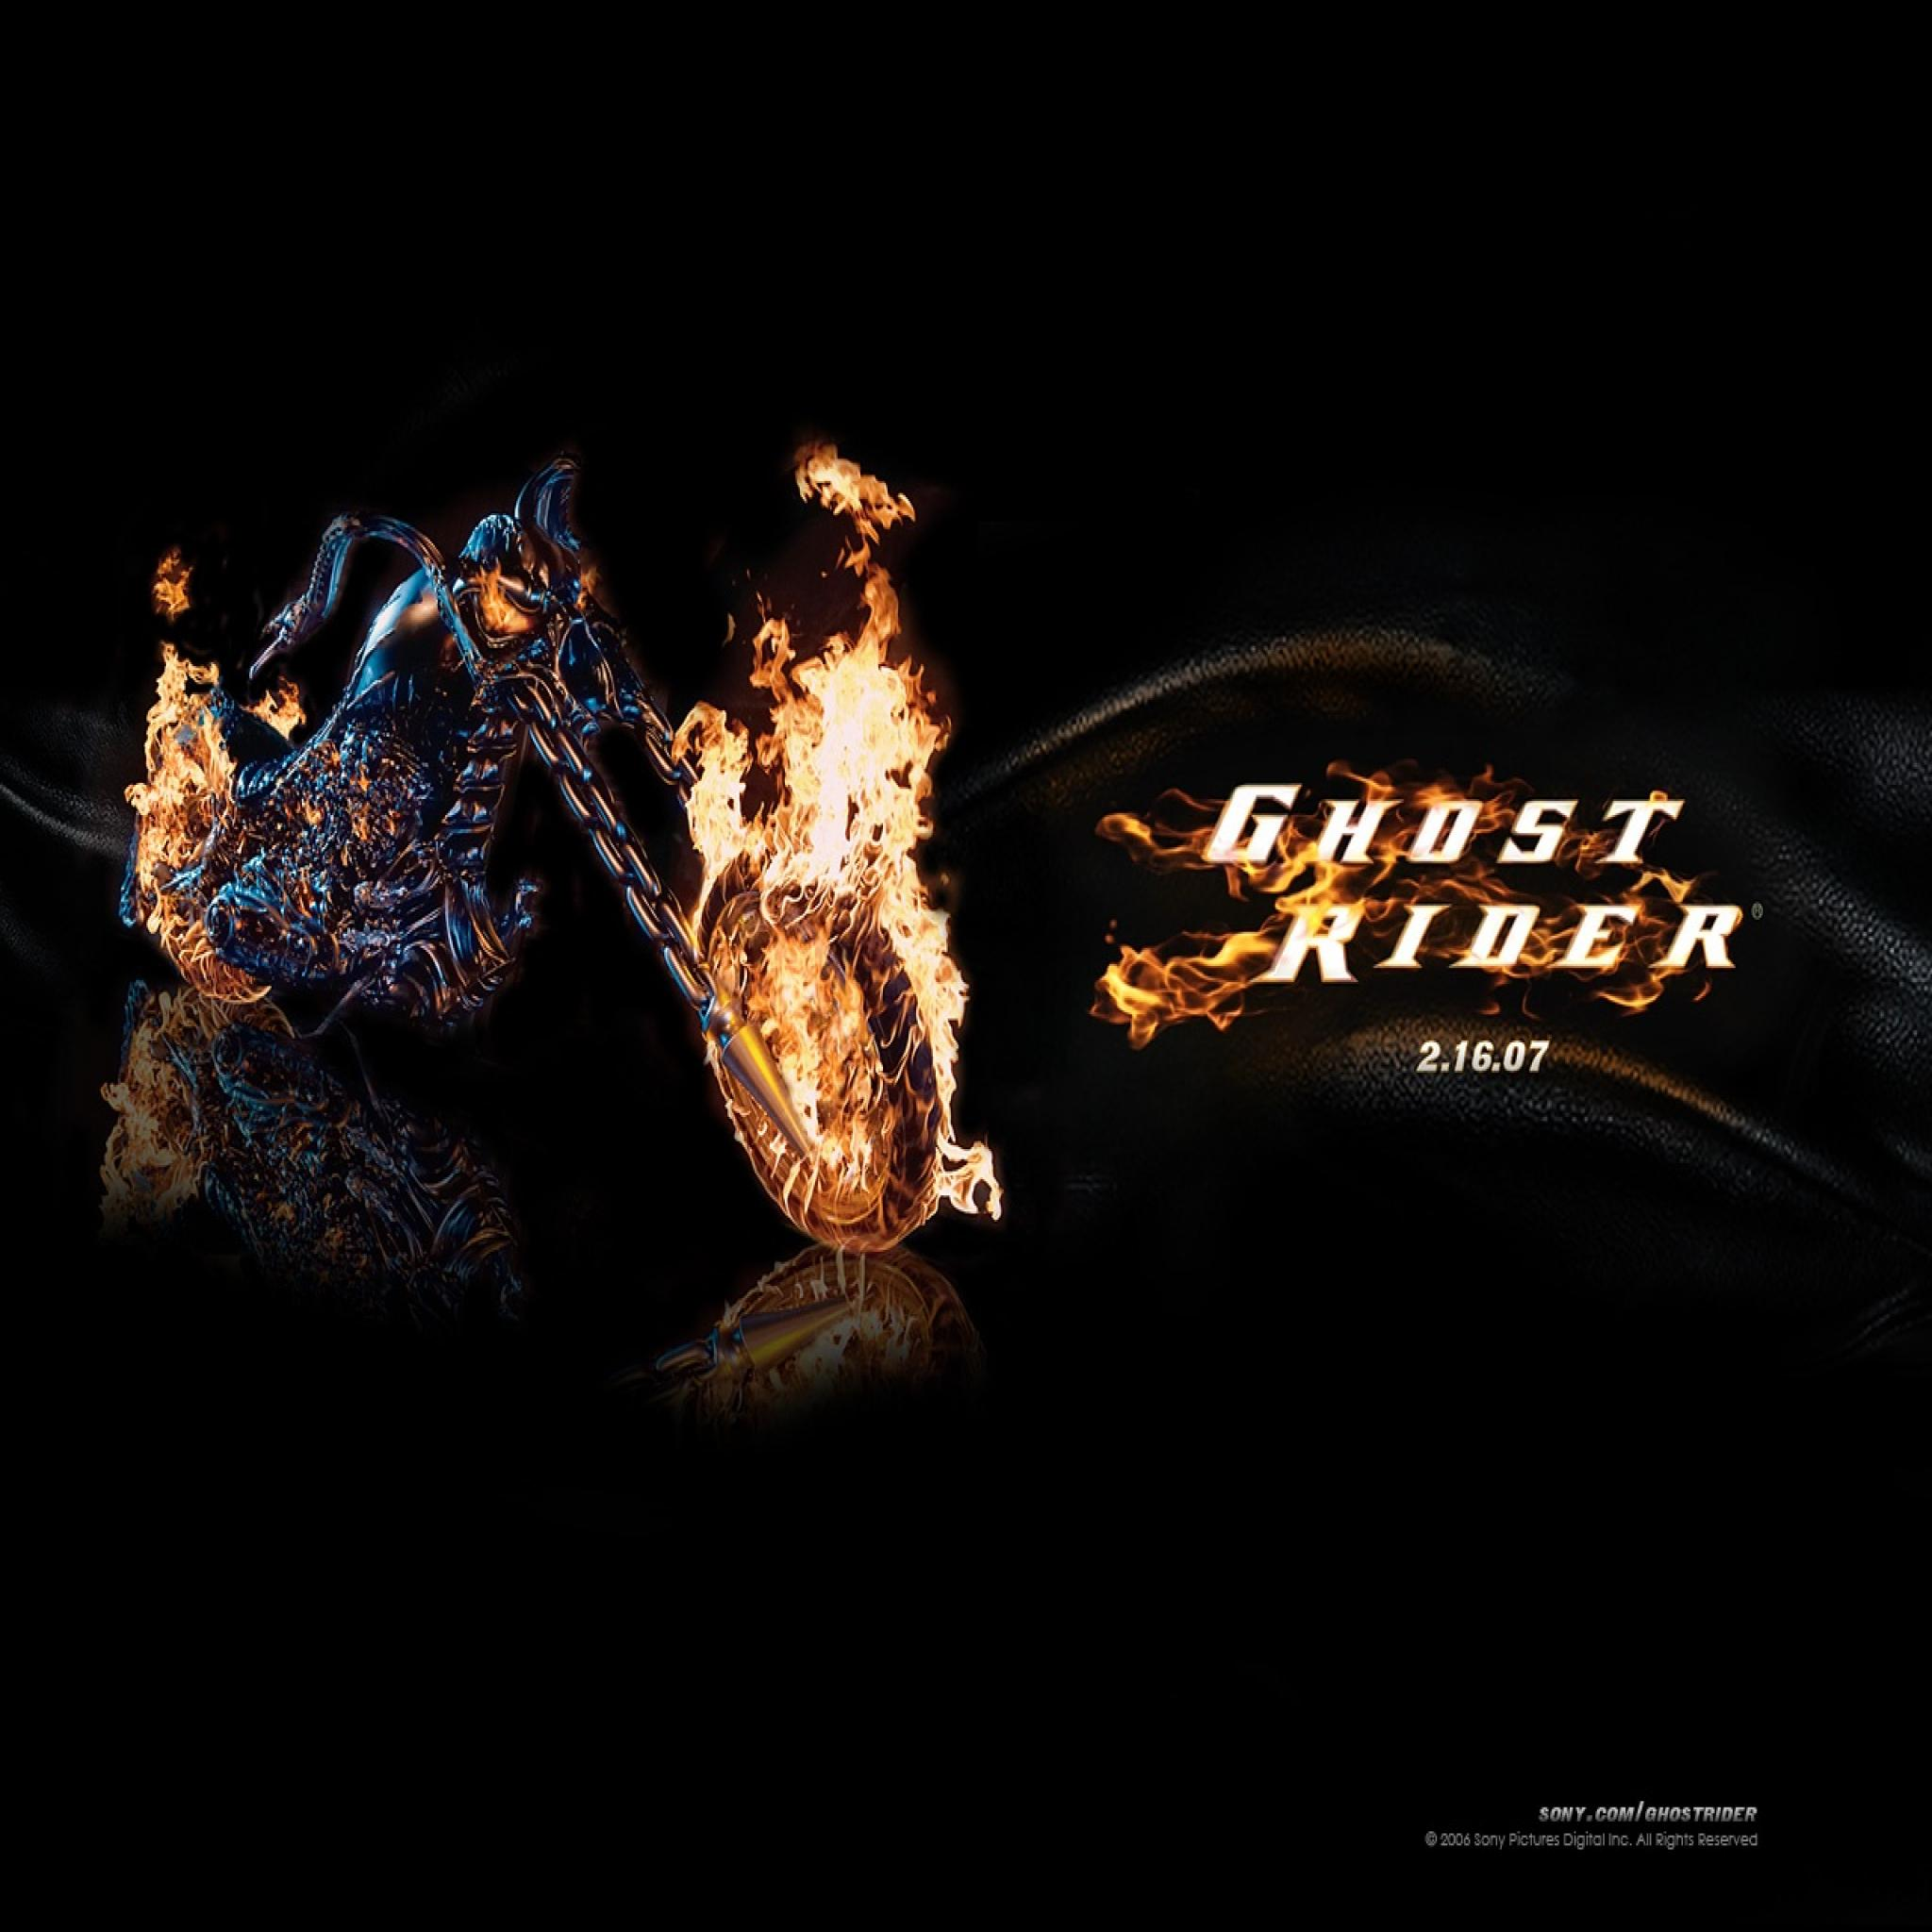 Ghost Rider HD Wallpapers 2048x2048 Movie Wallpapers 2048x2048 2048x2048